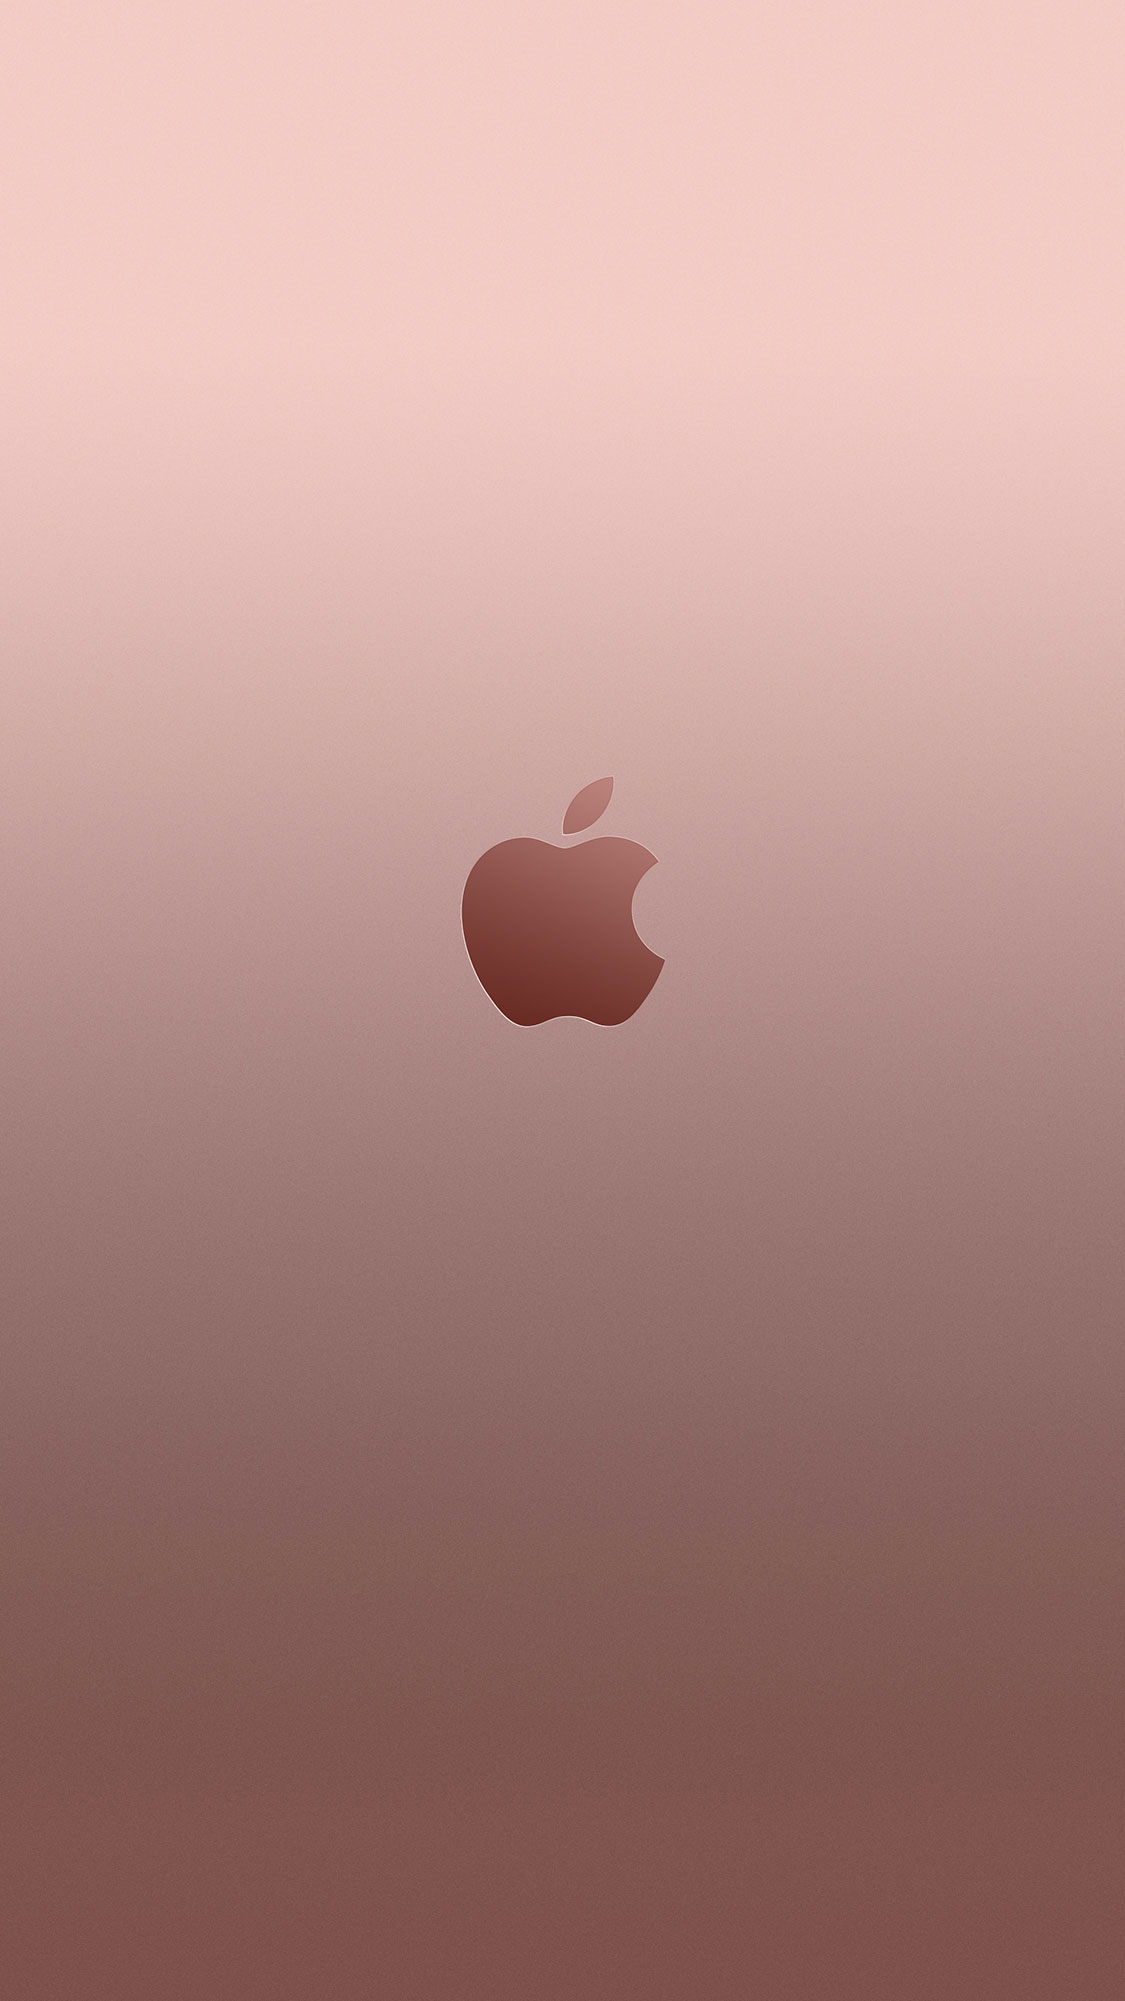 20 New iPhone 6 6S Wallpapers Backgrounds in HD Quality 1125x2001